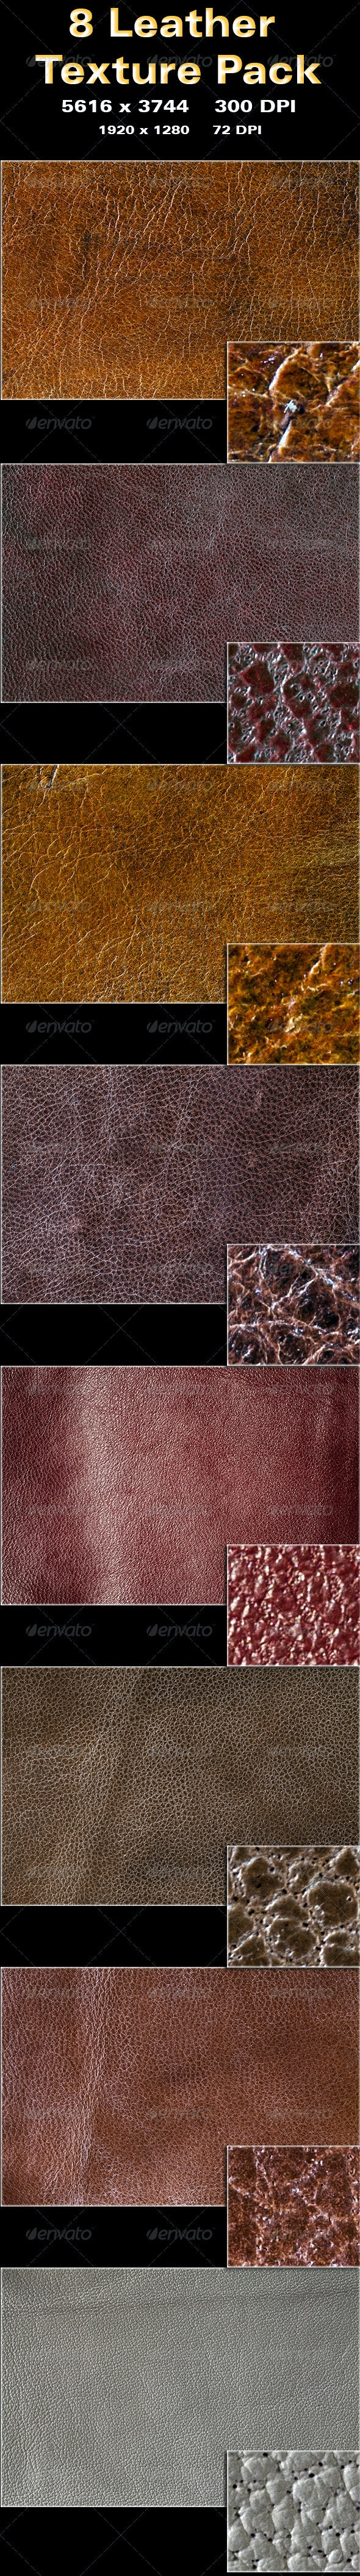 8 Leather Texture Pack - Fabric Textures